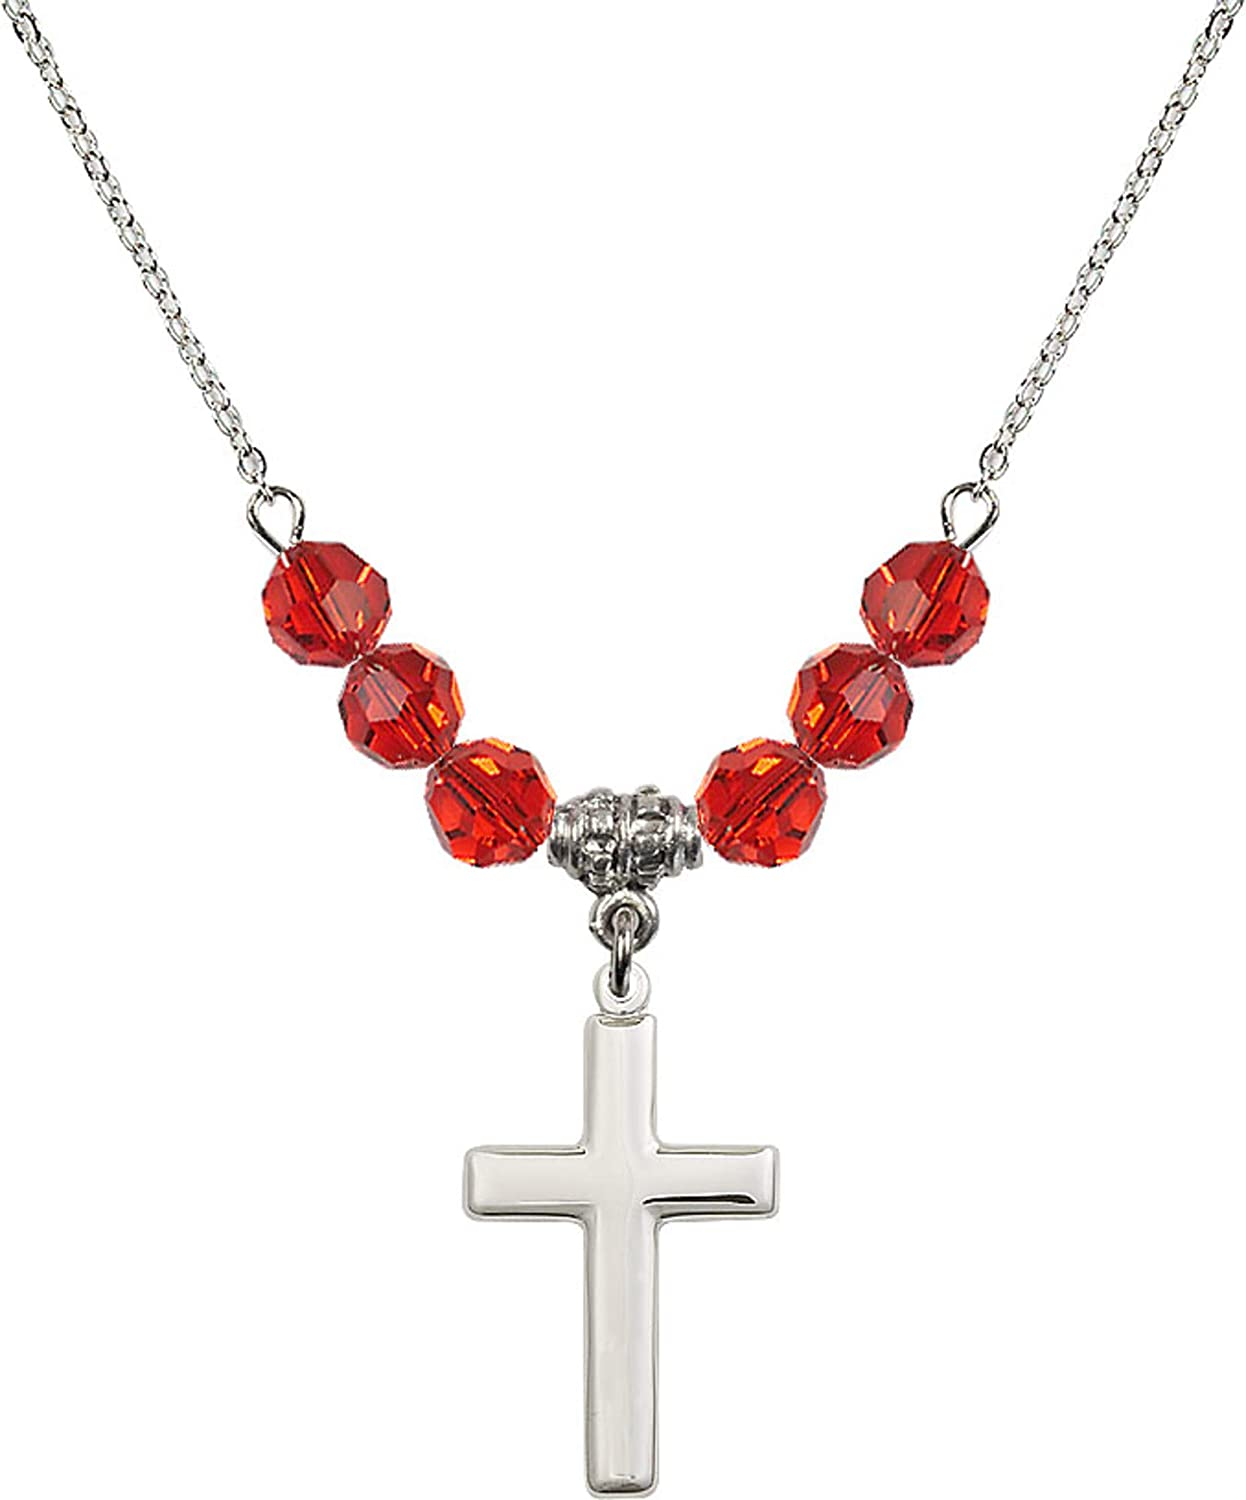 Bonyak Jewelry 18 Inch Rhodium Plated Necklace w// 6mm Red July Birth Month Stone Beads and Cross Charm